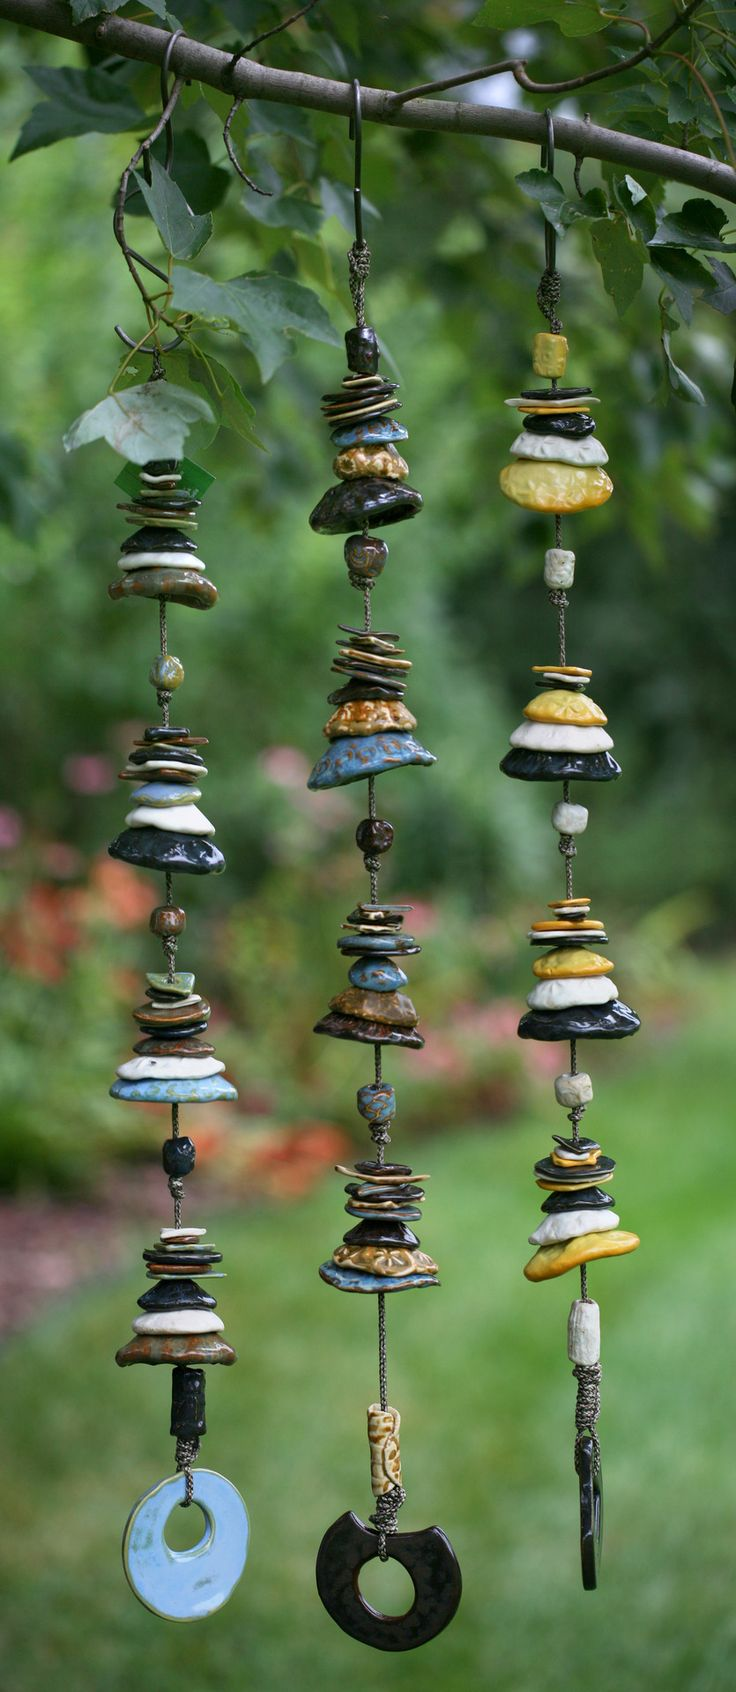 This dramatic strand of individually crafted pottery discs fired in earthy glazes is a very striking piece of art. This unique mobile brings a real artisan's touch to your home when hung by a doorway                                                                                                                                                                                 Mehr